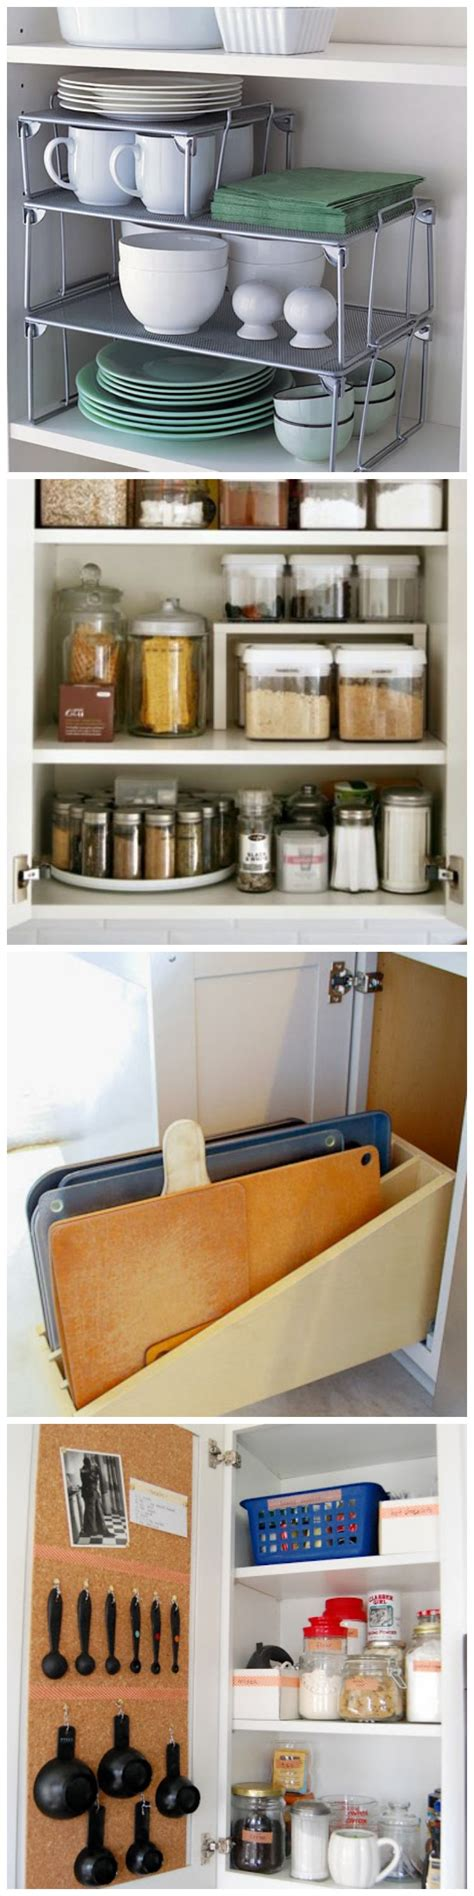 kitchen cabinet organizing ideas 18 organizing ideas that the most out of your